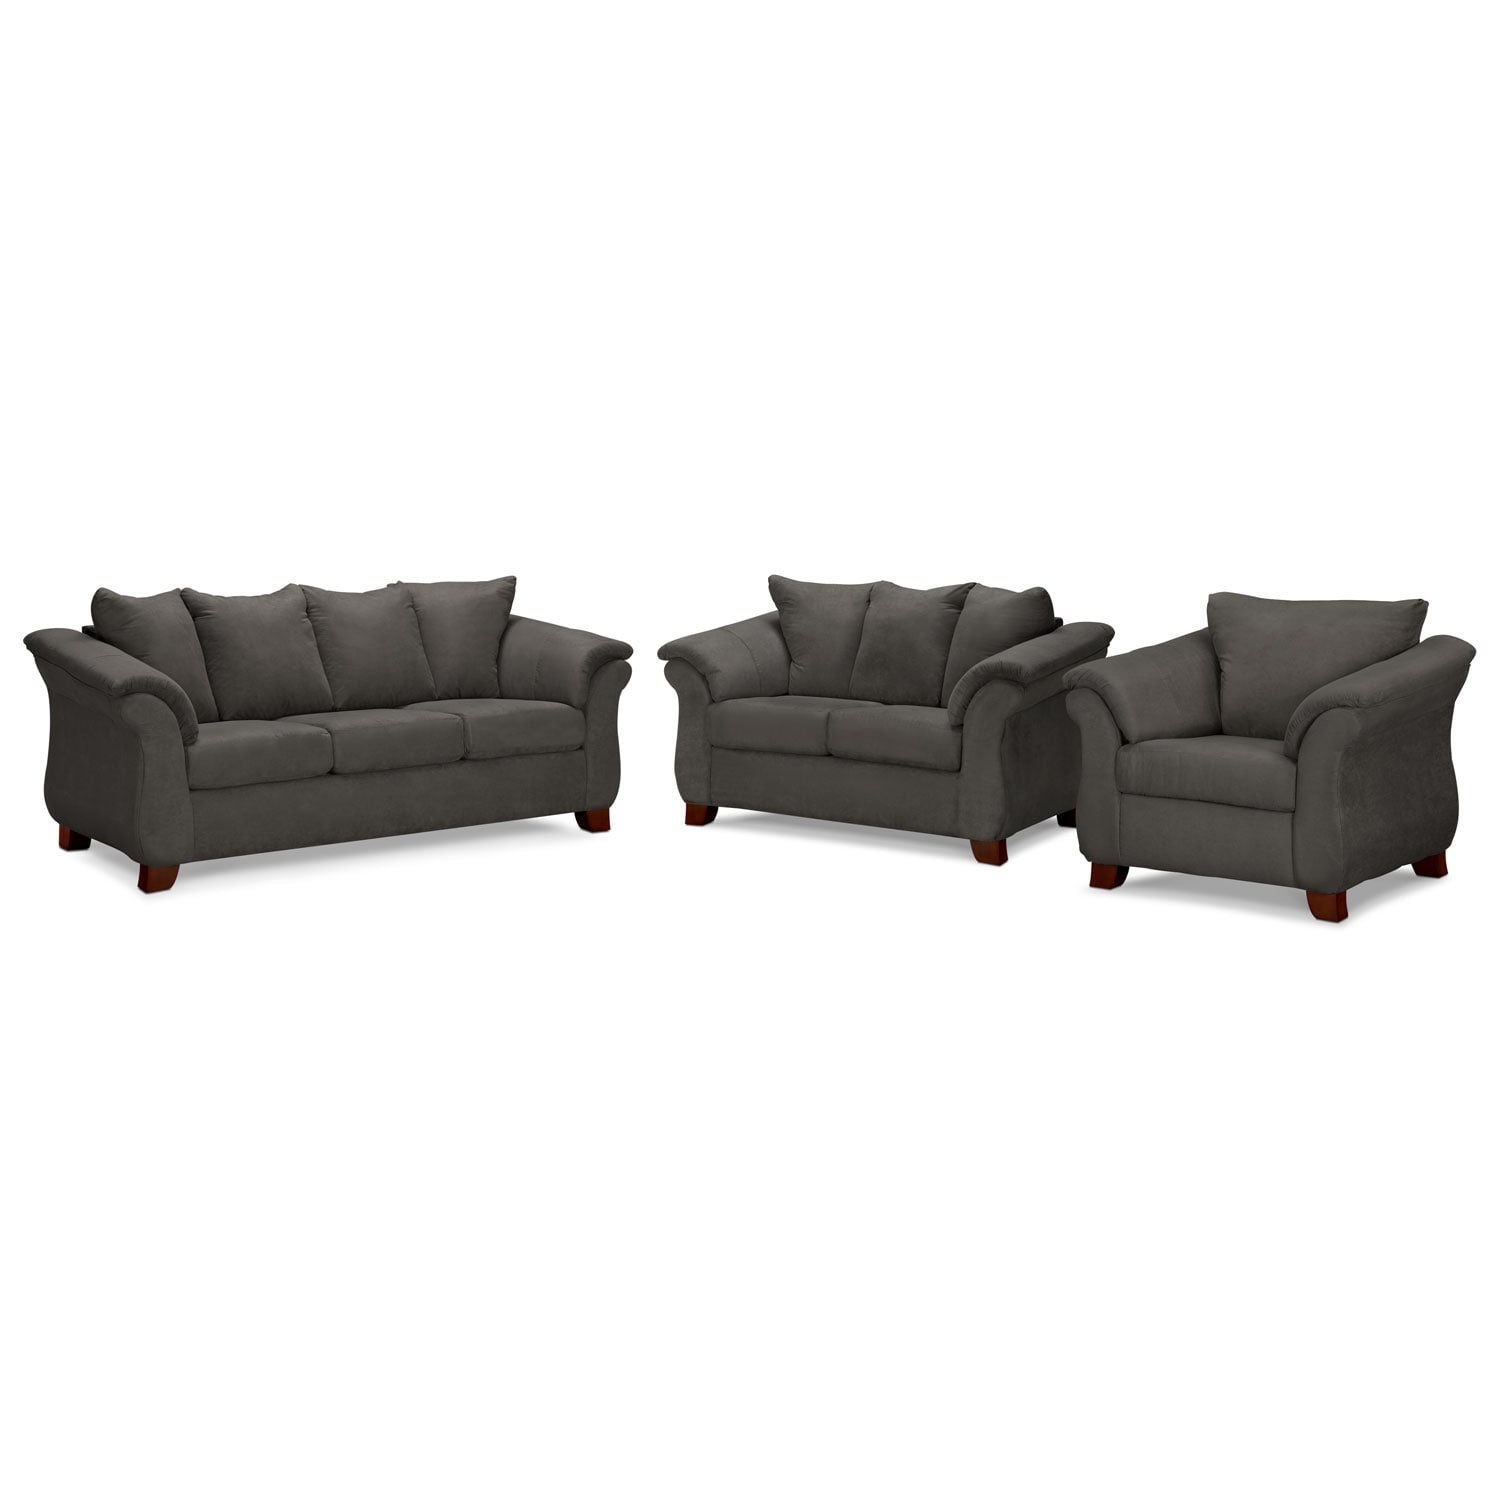 [Adrian Graphite 3 Pc. Living Room]